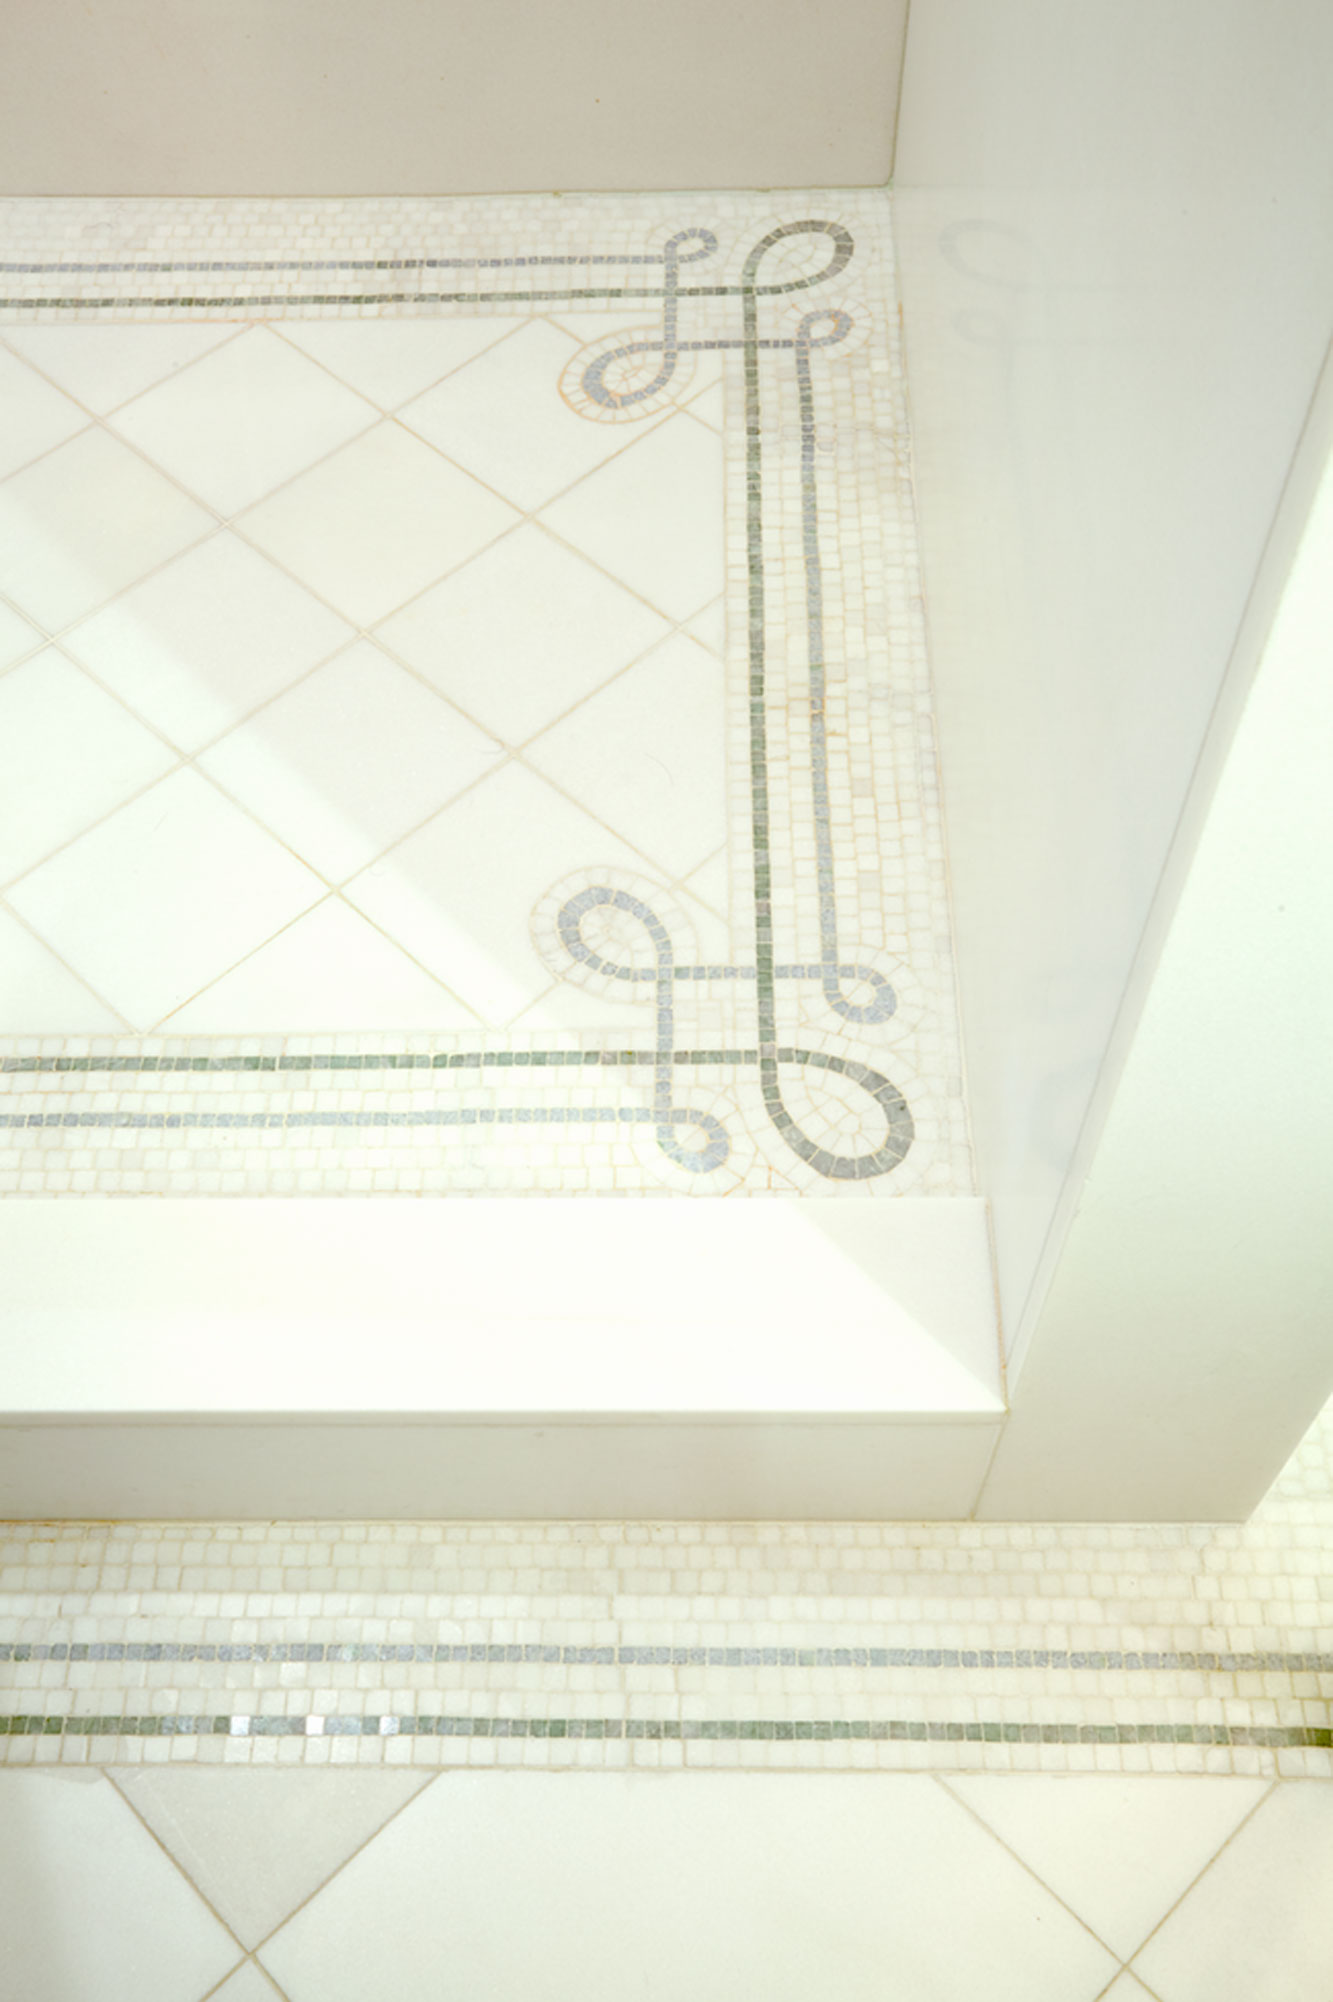 brooke moorhead interior design 5th avenue classic bathroom detail